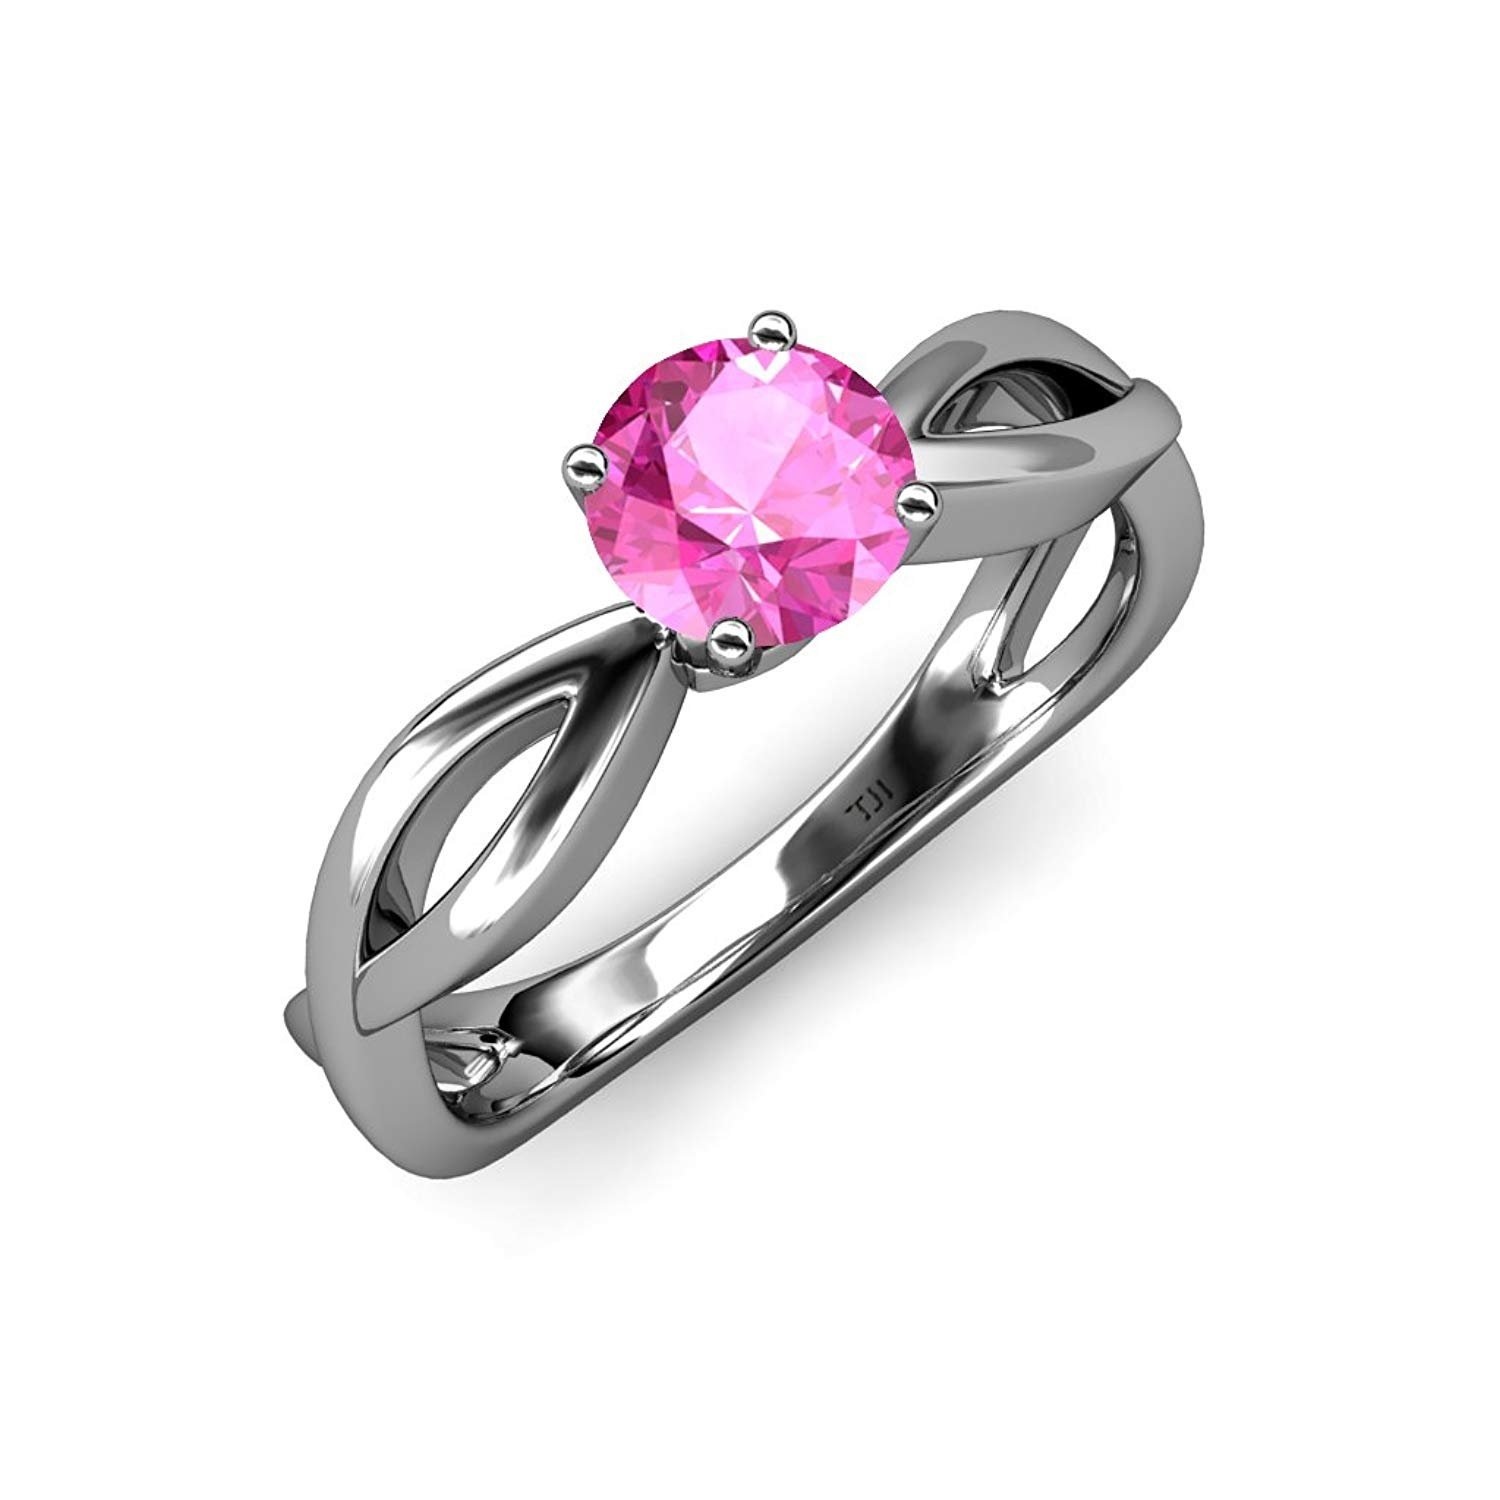 Pink Sapphire Infinity Solitaire Engagement Ring 0.95 ct in 14K White Gold by TriJewels